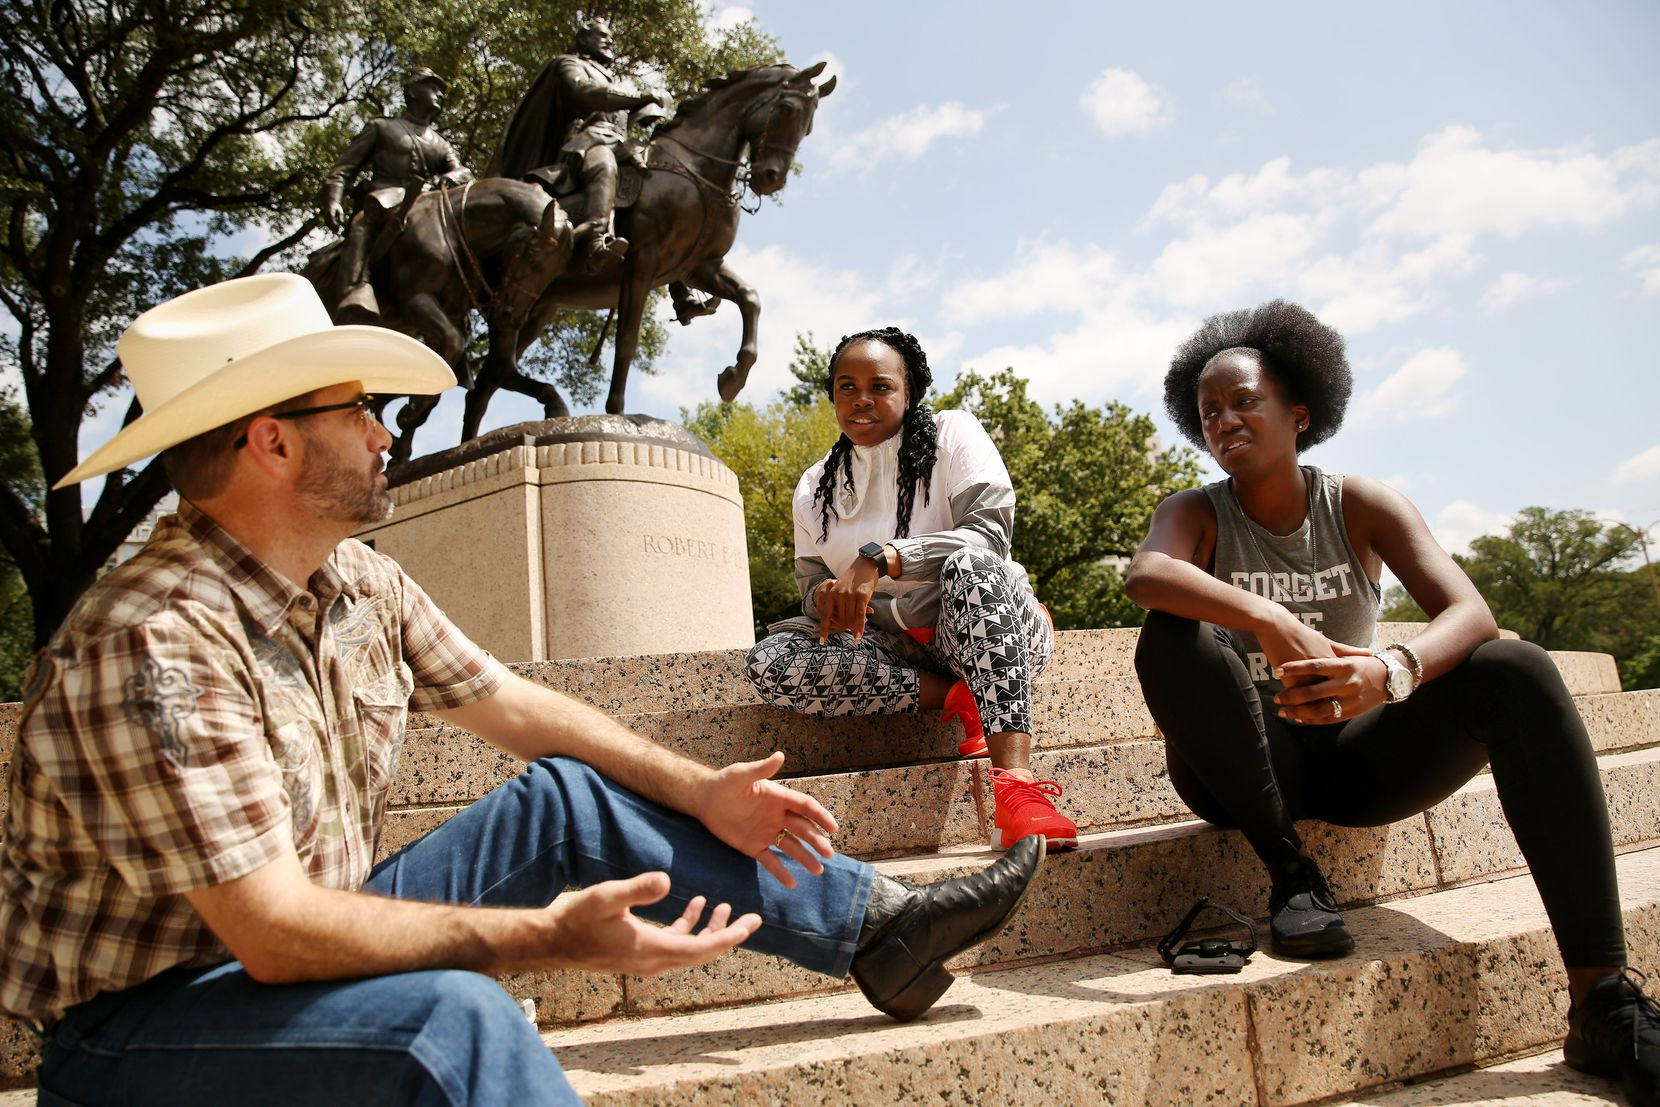 (From left) Daniel Shipman, Adria Green and Crystal Sentell, all of Dallas, have a conversation about race, racism and Civil War history near a statue of Confederate general Robert E. Lee at Robert E. Lee Park on  Aug.  16, 2017.